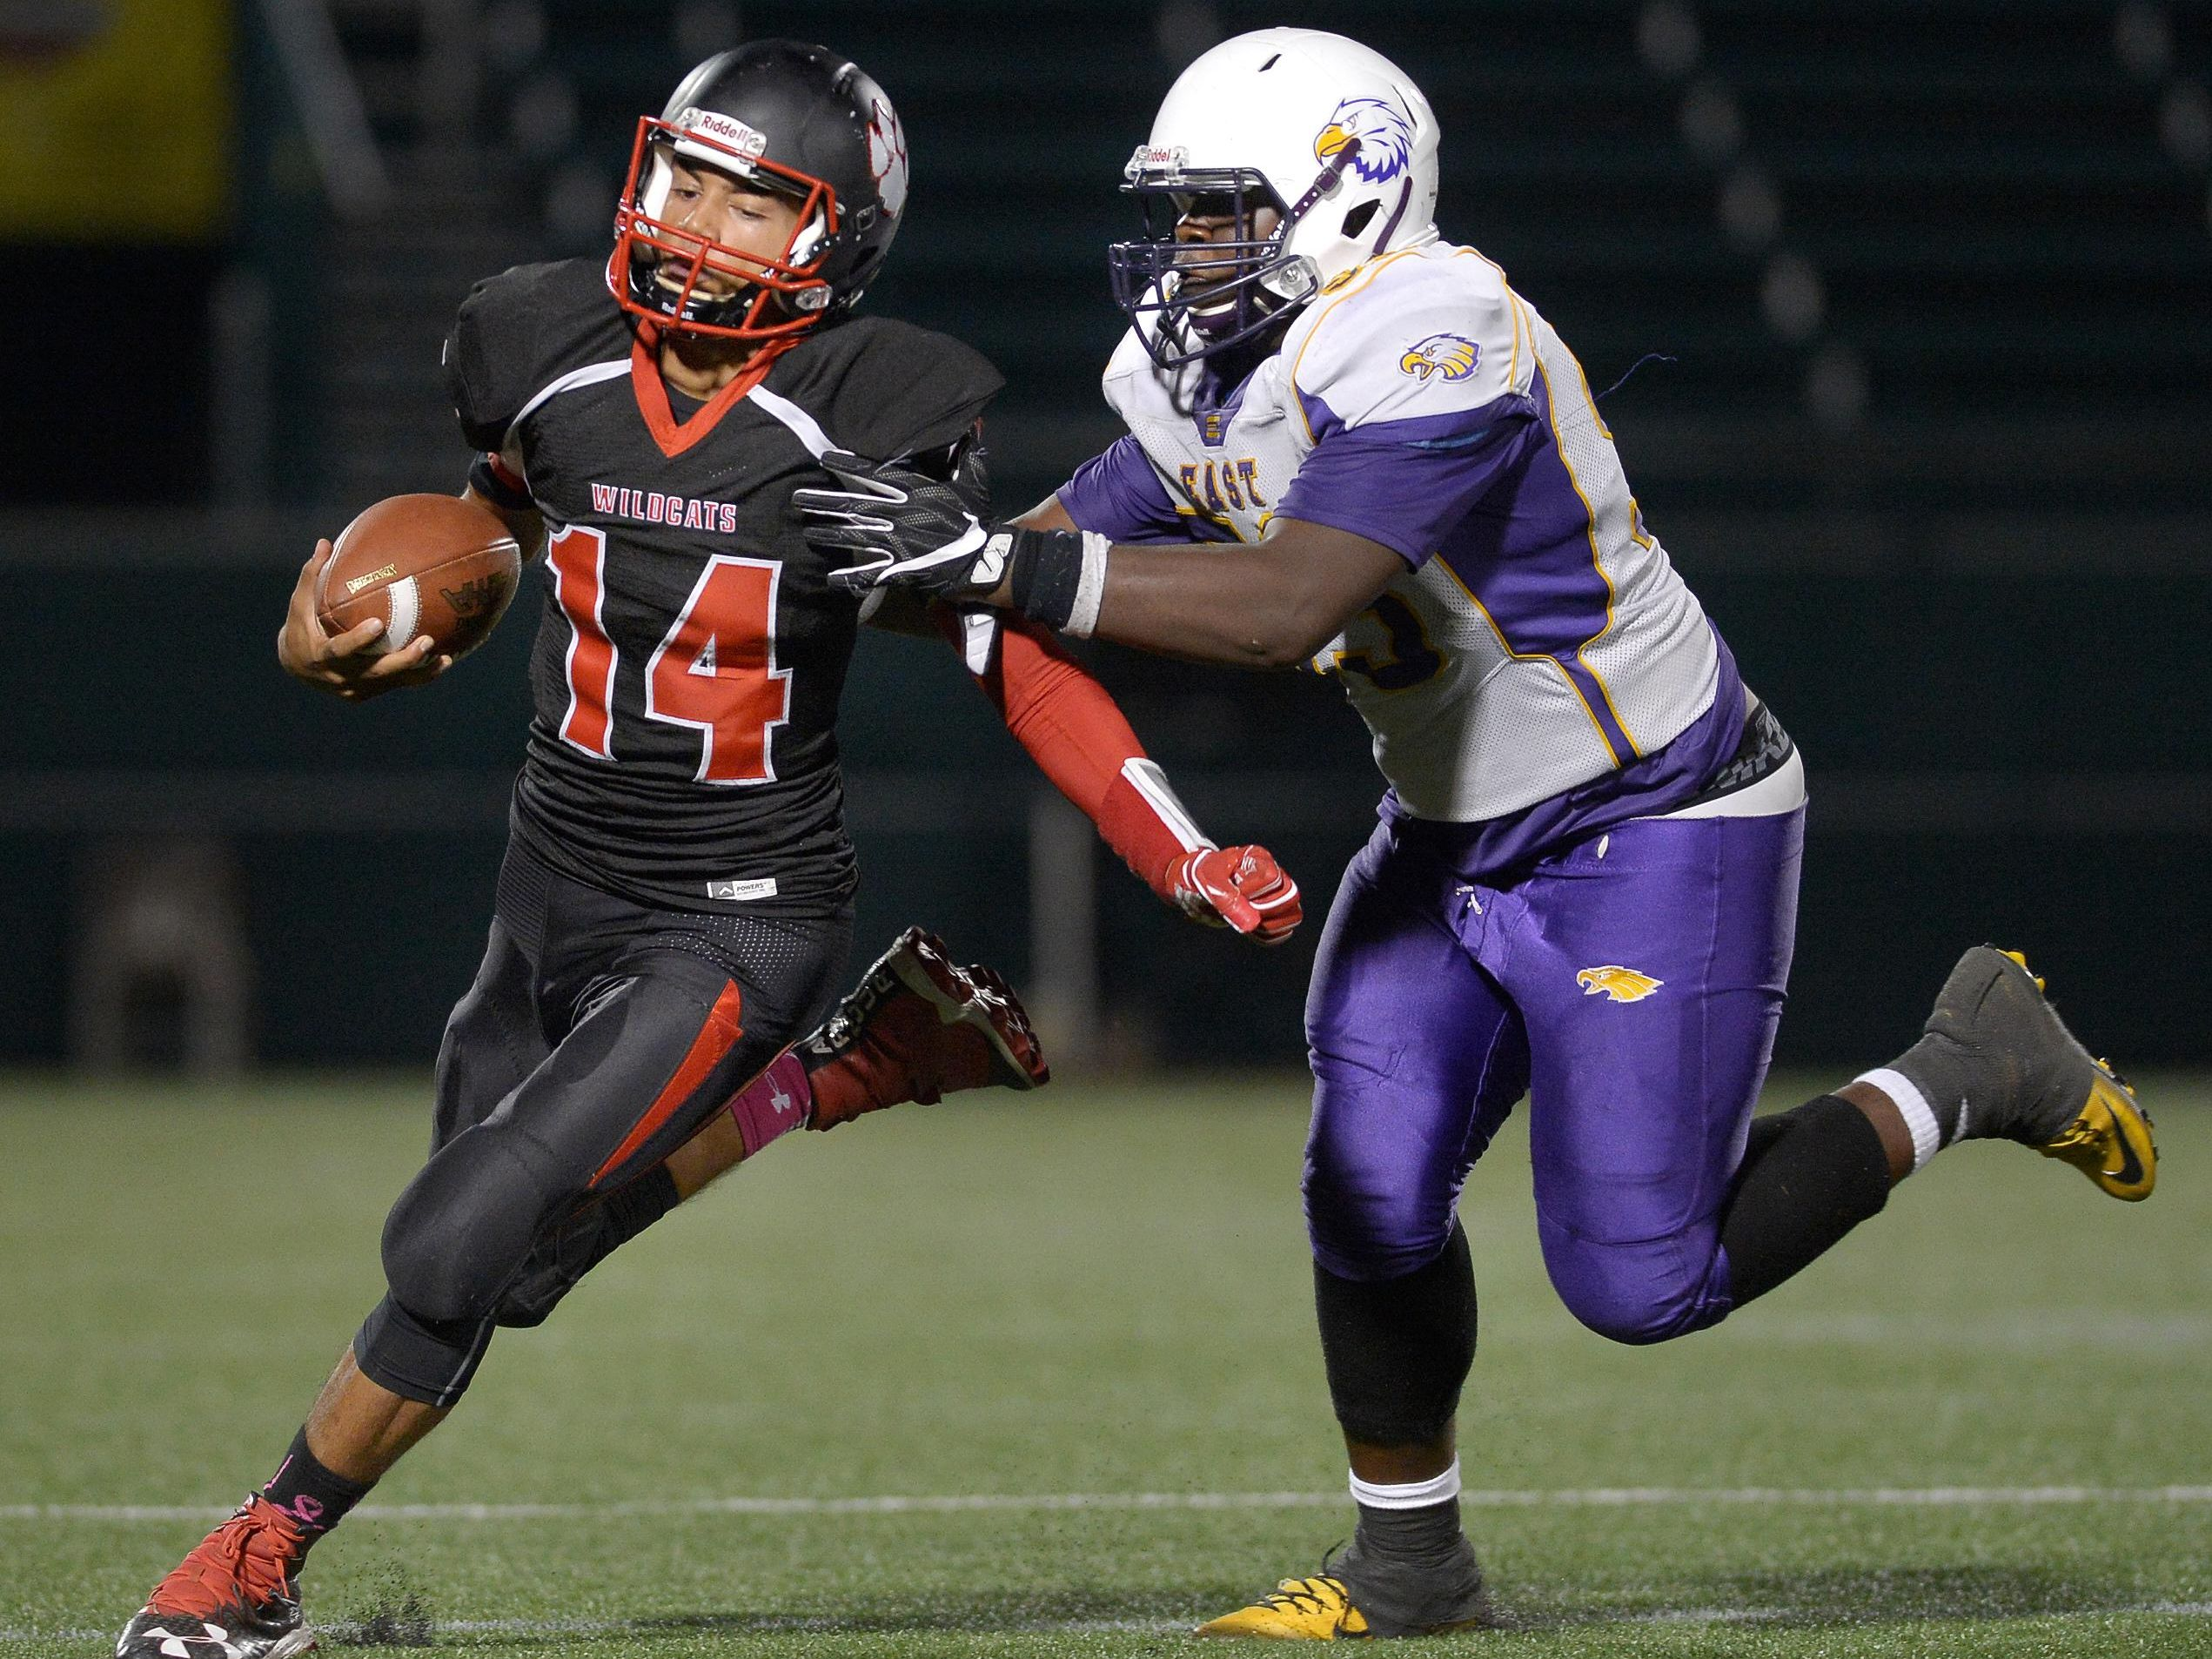 Wilson quarterback James Cotton, left, is pursued by East's Charles Brown.